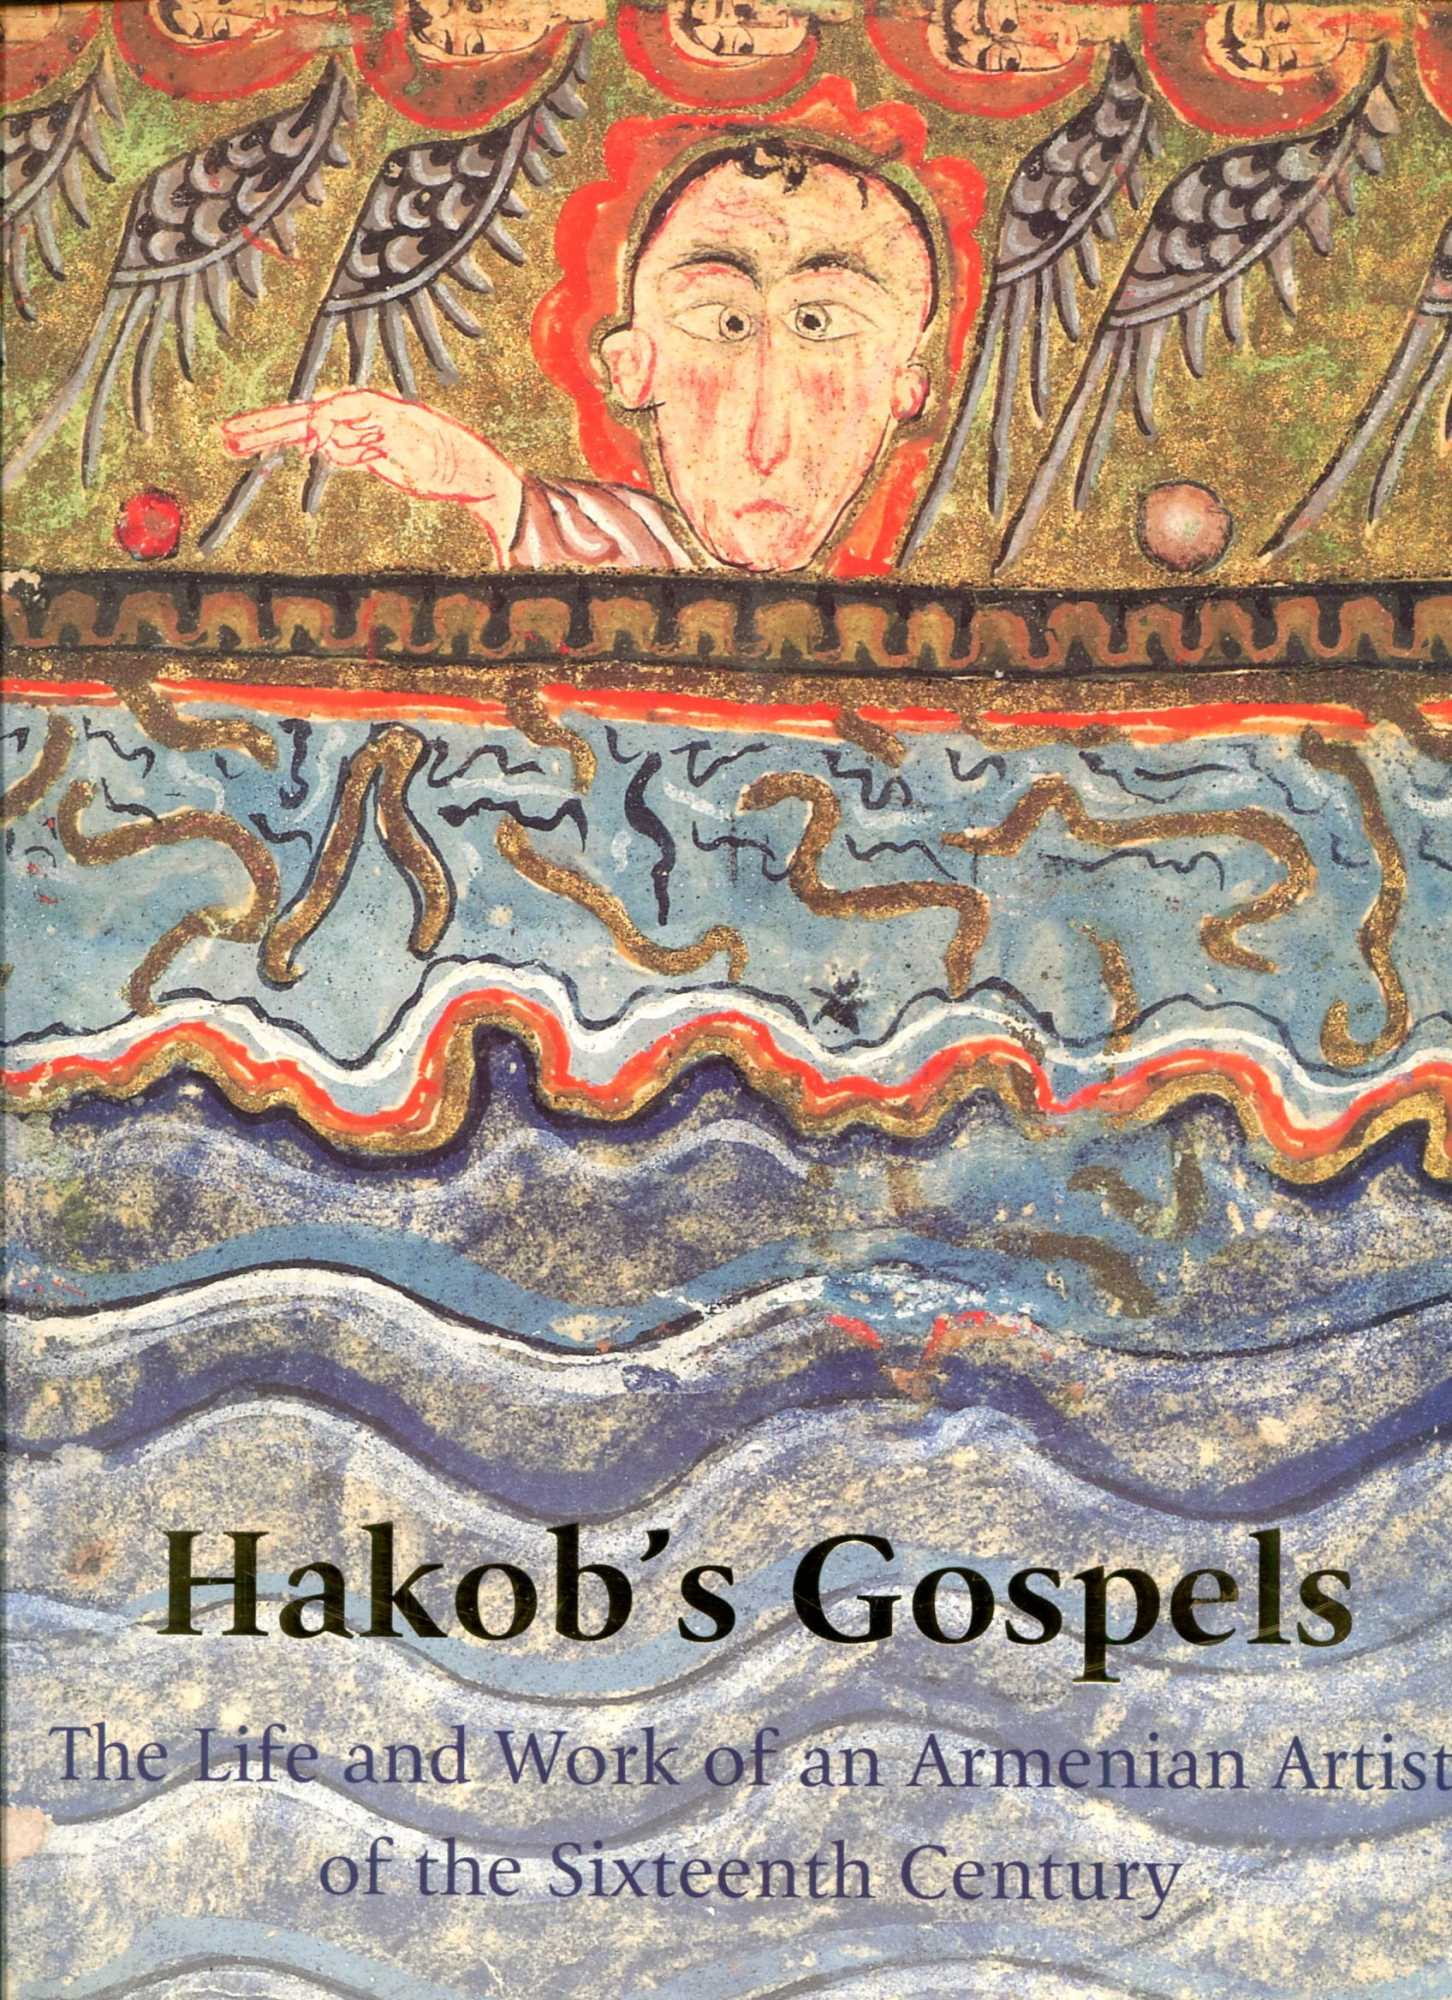 Image for Hakob's Gospels: The Life and Work of an Armenian Artist of the Sixteenth Century (Sam Fogg)